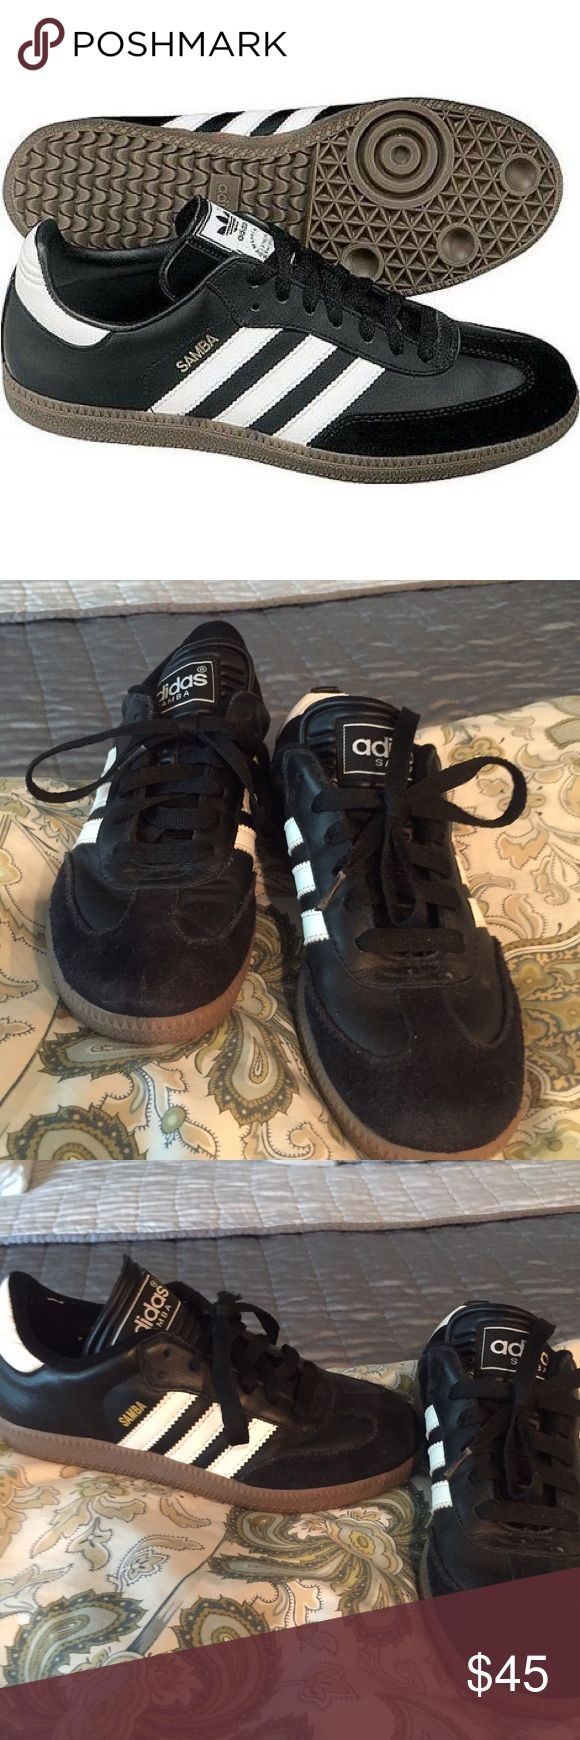 🎉SOLD🎉ADIDAS Samba Shoes Adidas' legendary shoe made with a smooth leather upper, suede toe cap, synthetic lining, contrast 3-striples and heel tab, and pivot-point gun rubber outsole. In great condition, feel free to make an offer Adidas Shoes Sneakers